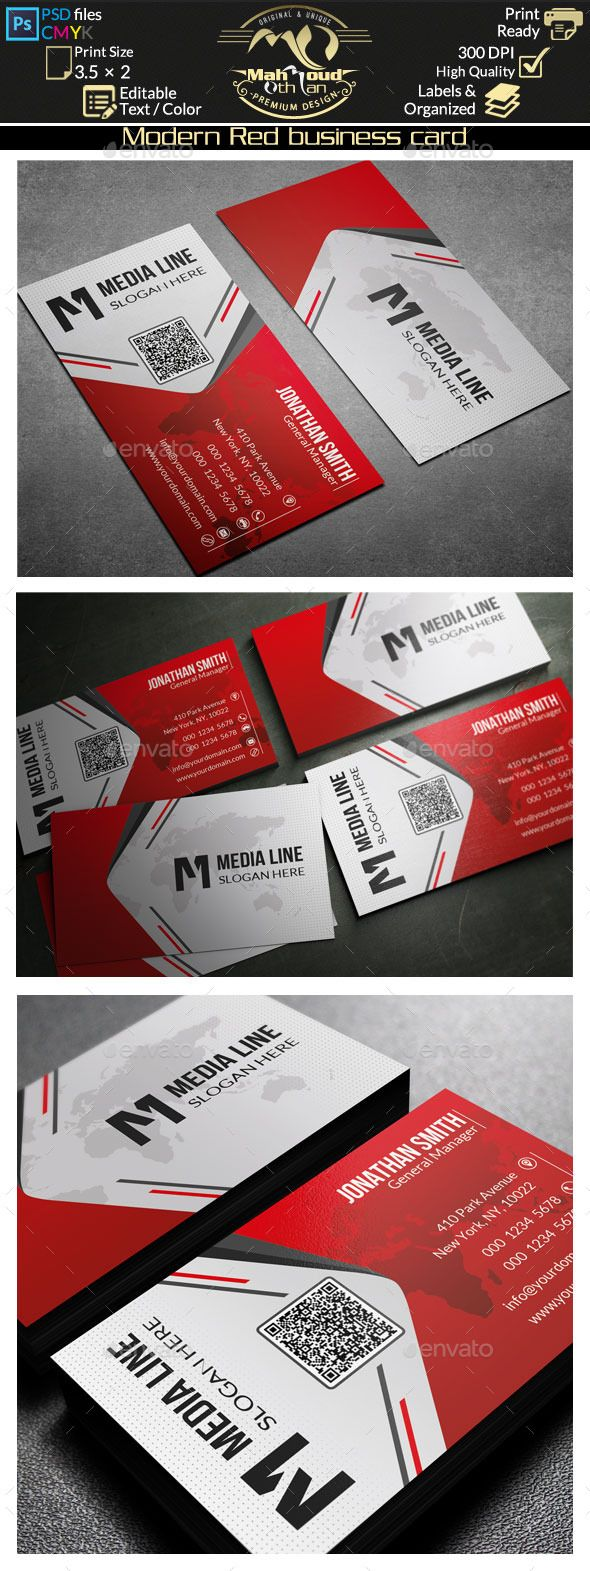 Buy Modern Red Business Card by on